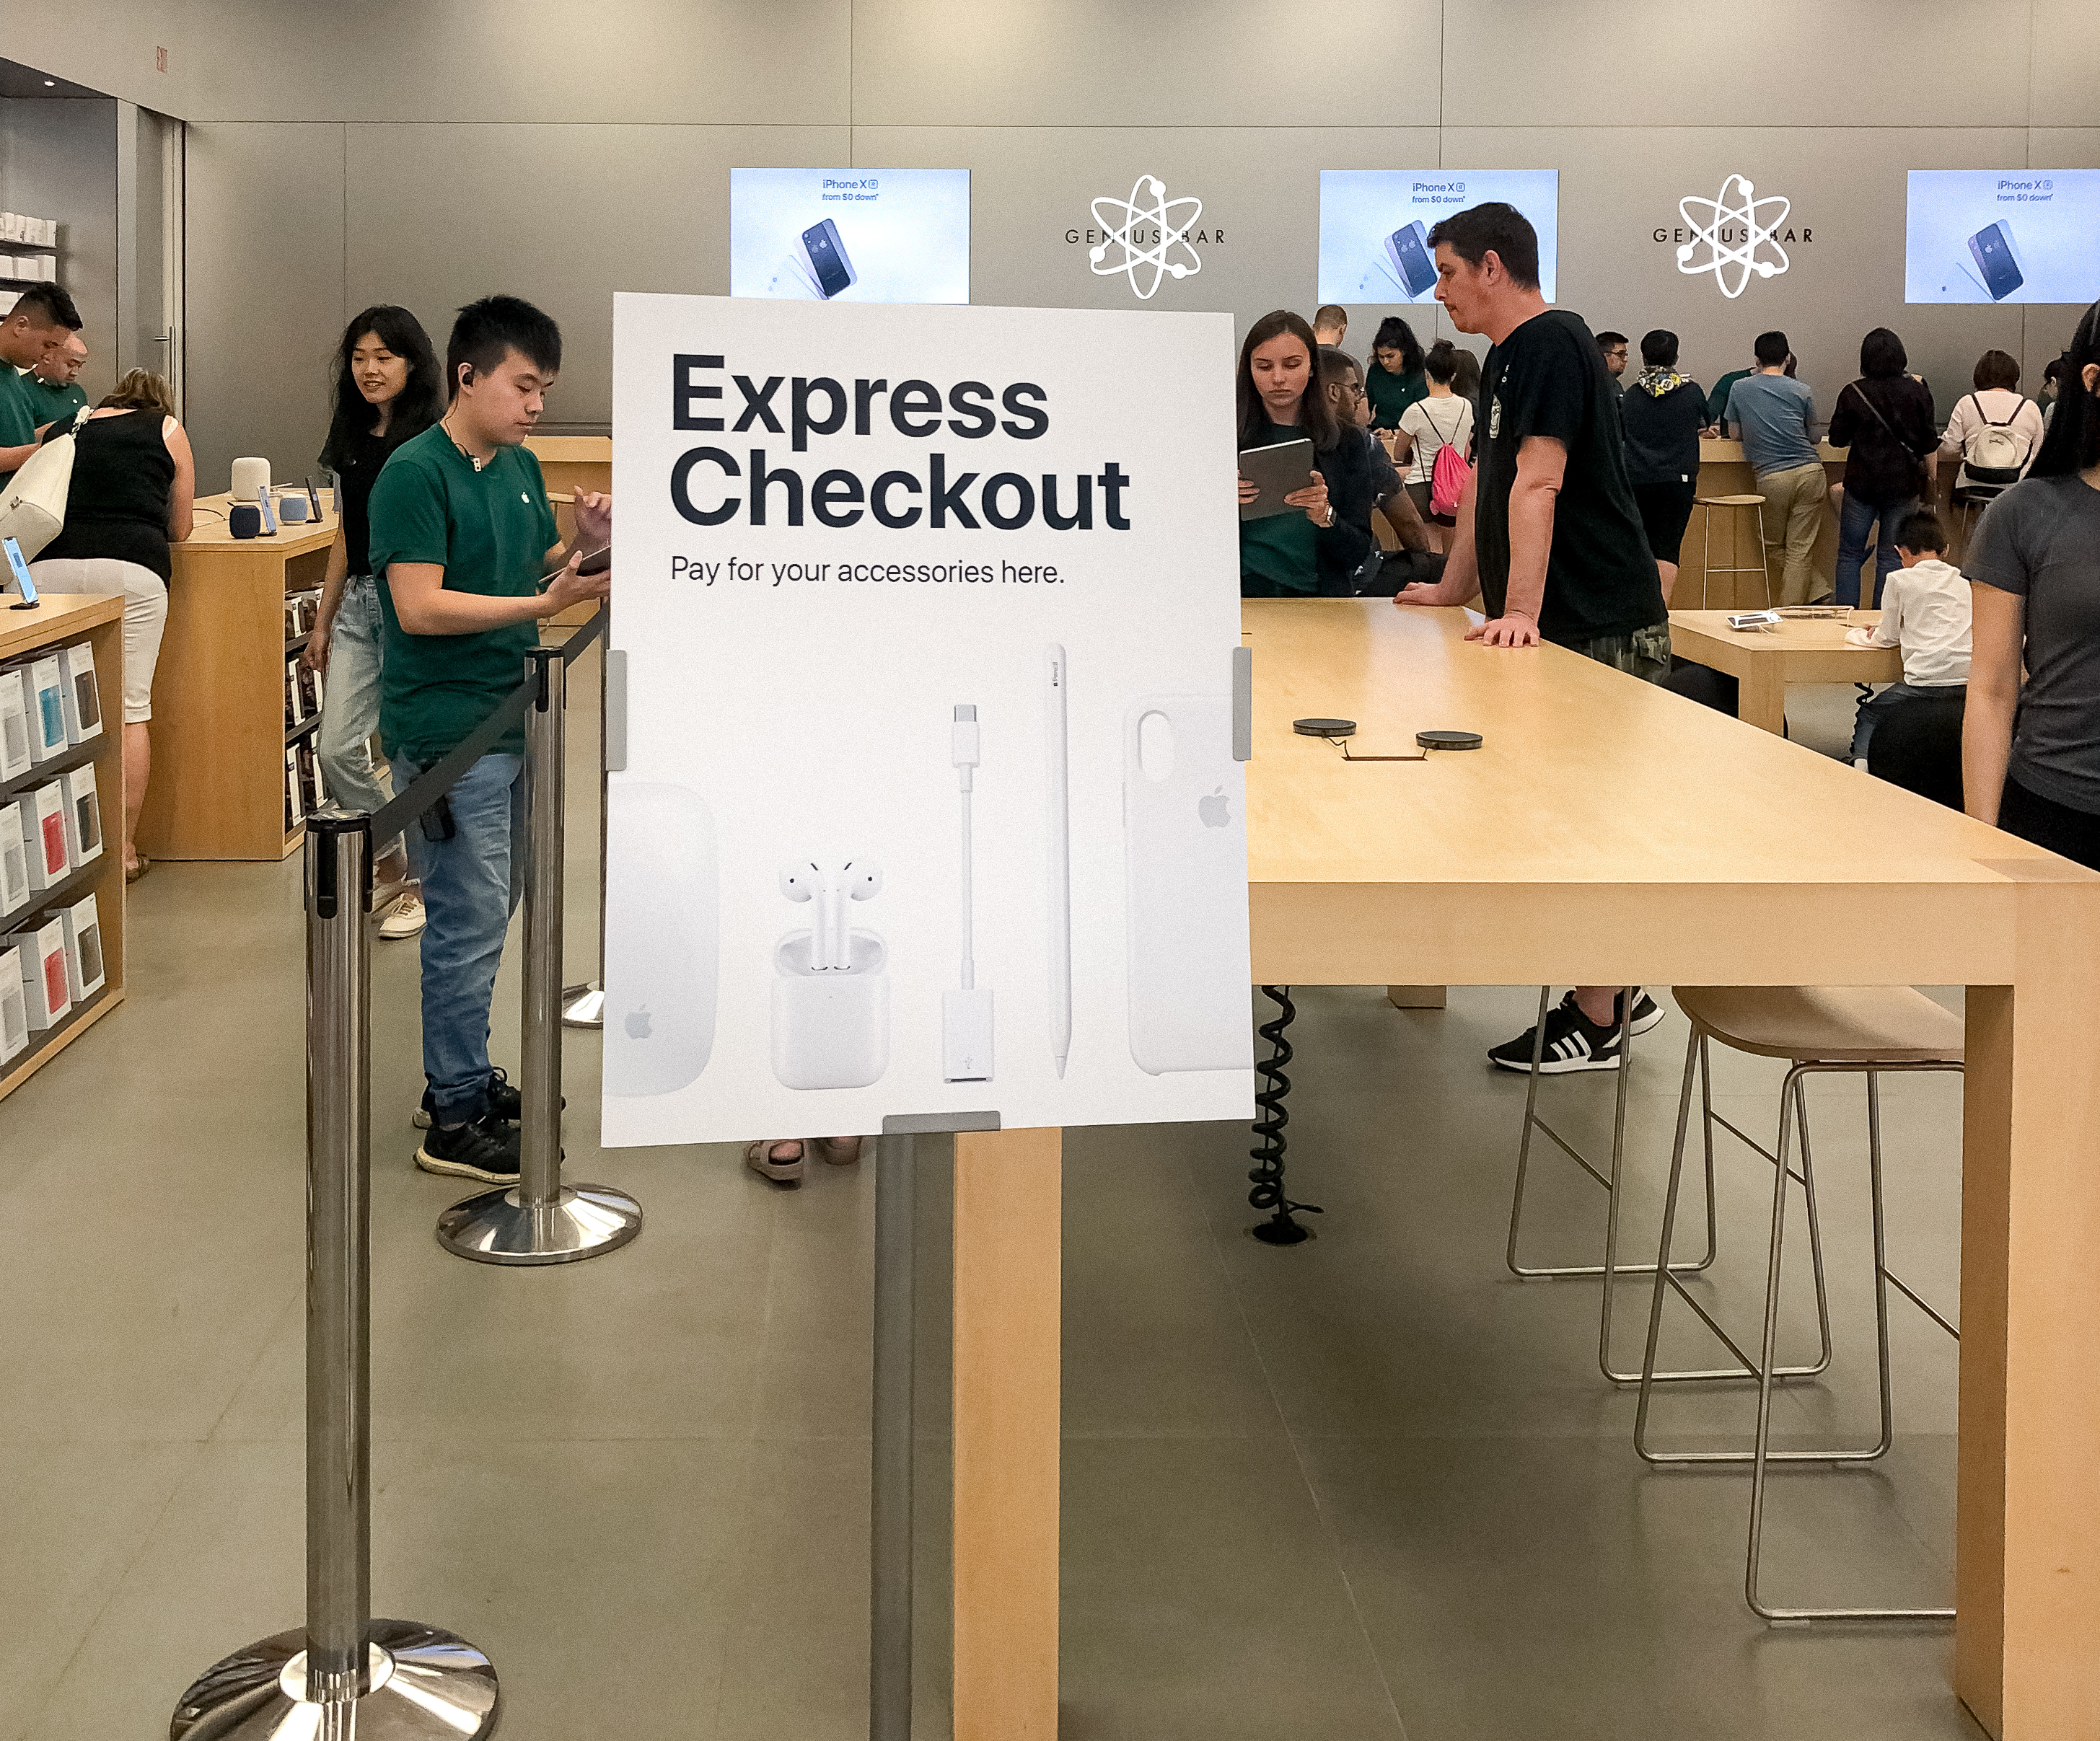 Apple Store Express Checkout